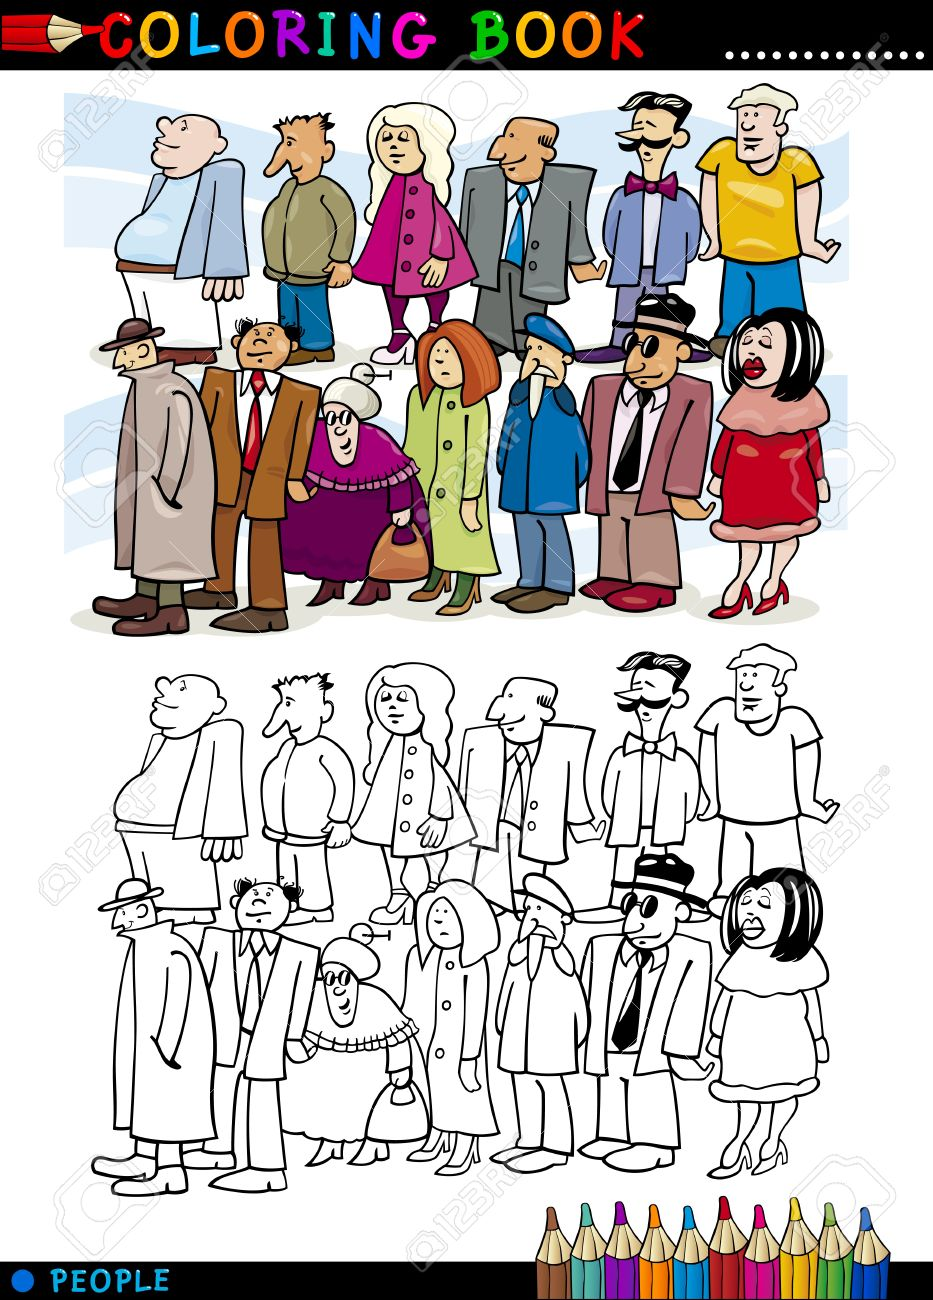 Coloring Book or Page Cartoon Illustration of People Group Staying in Queue Stock Vector - 16213928